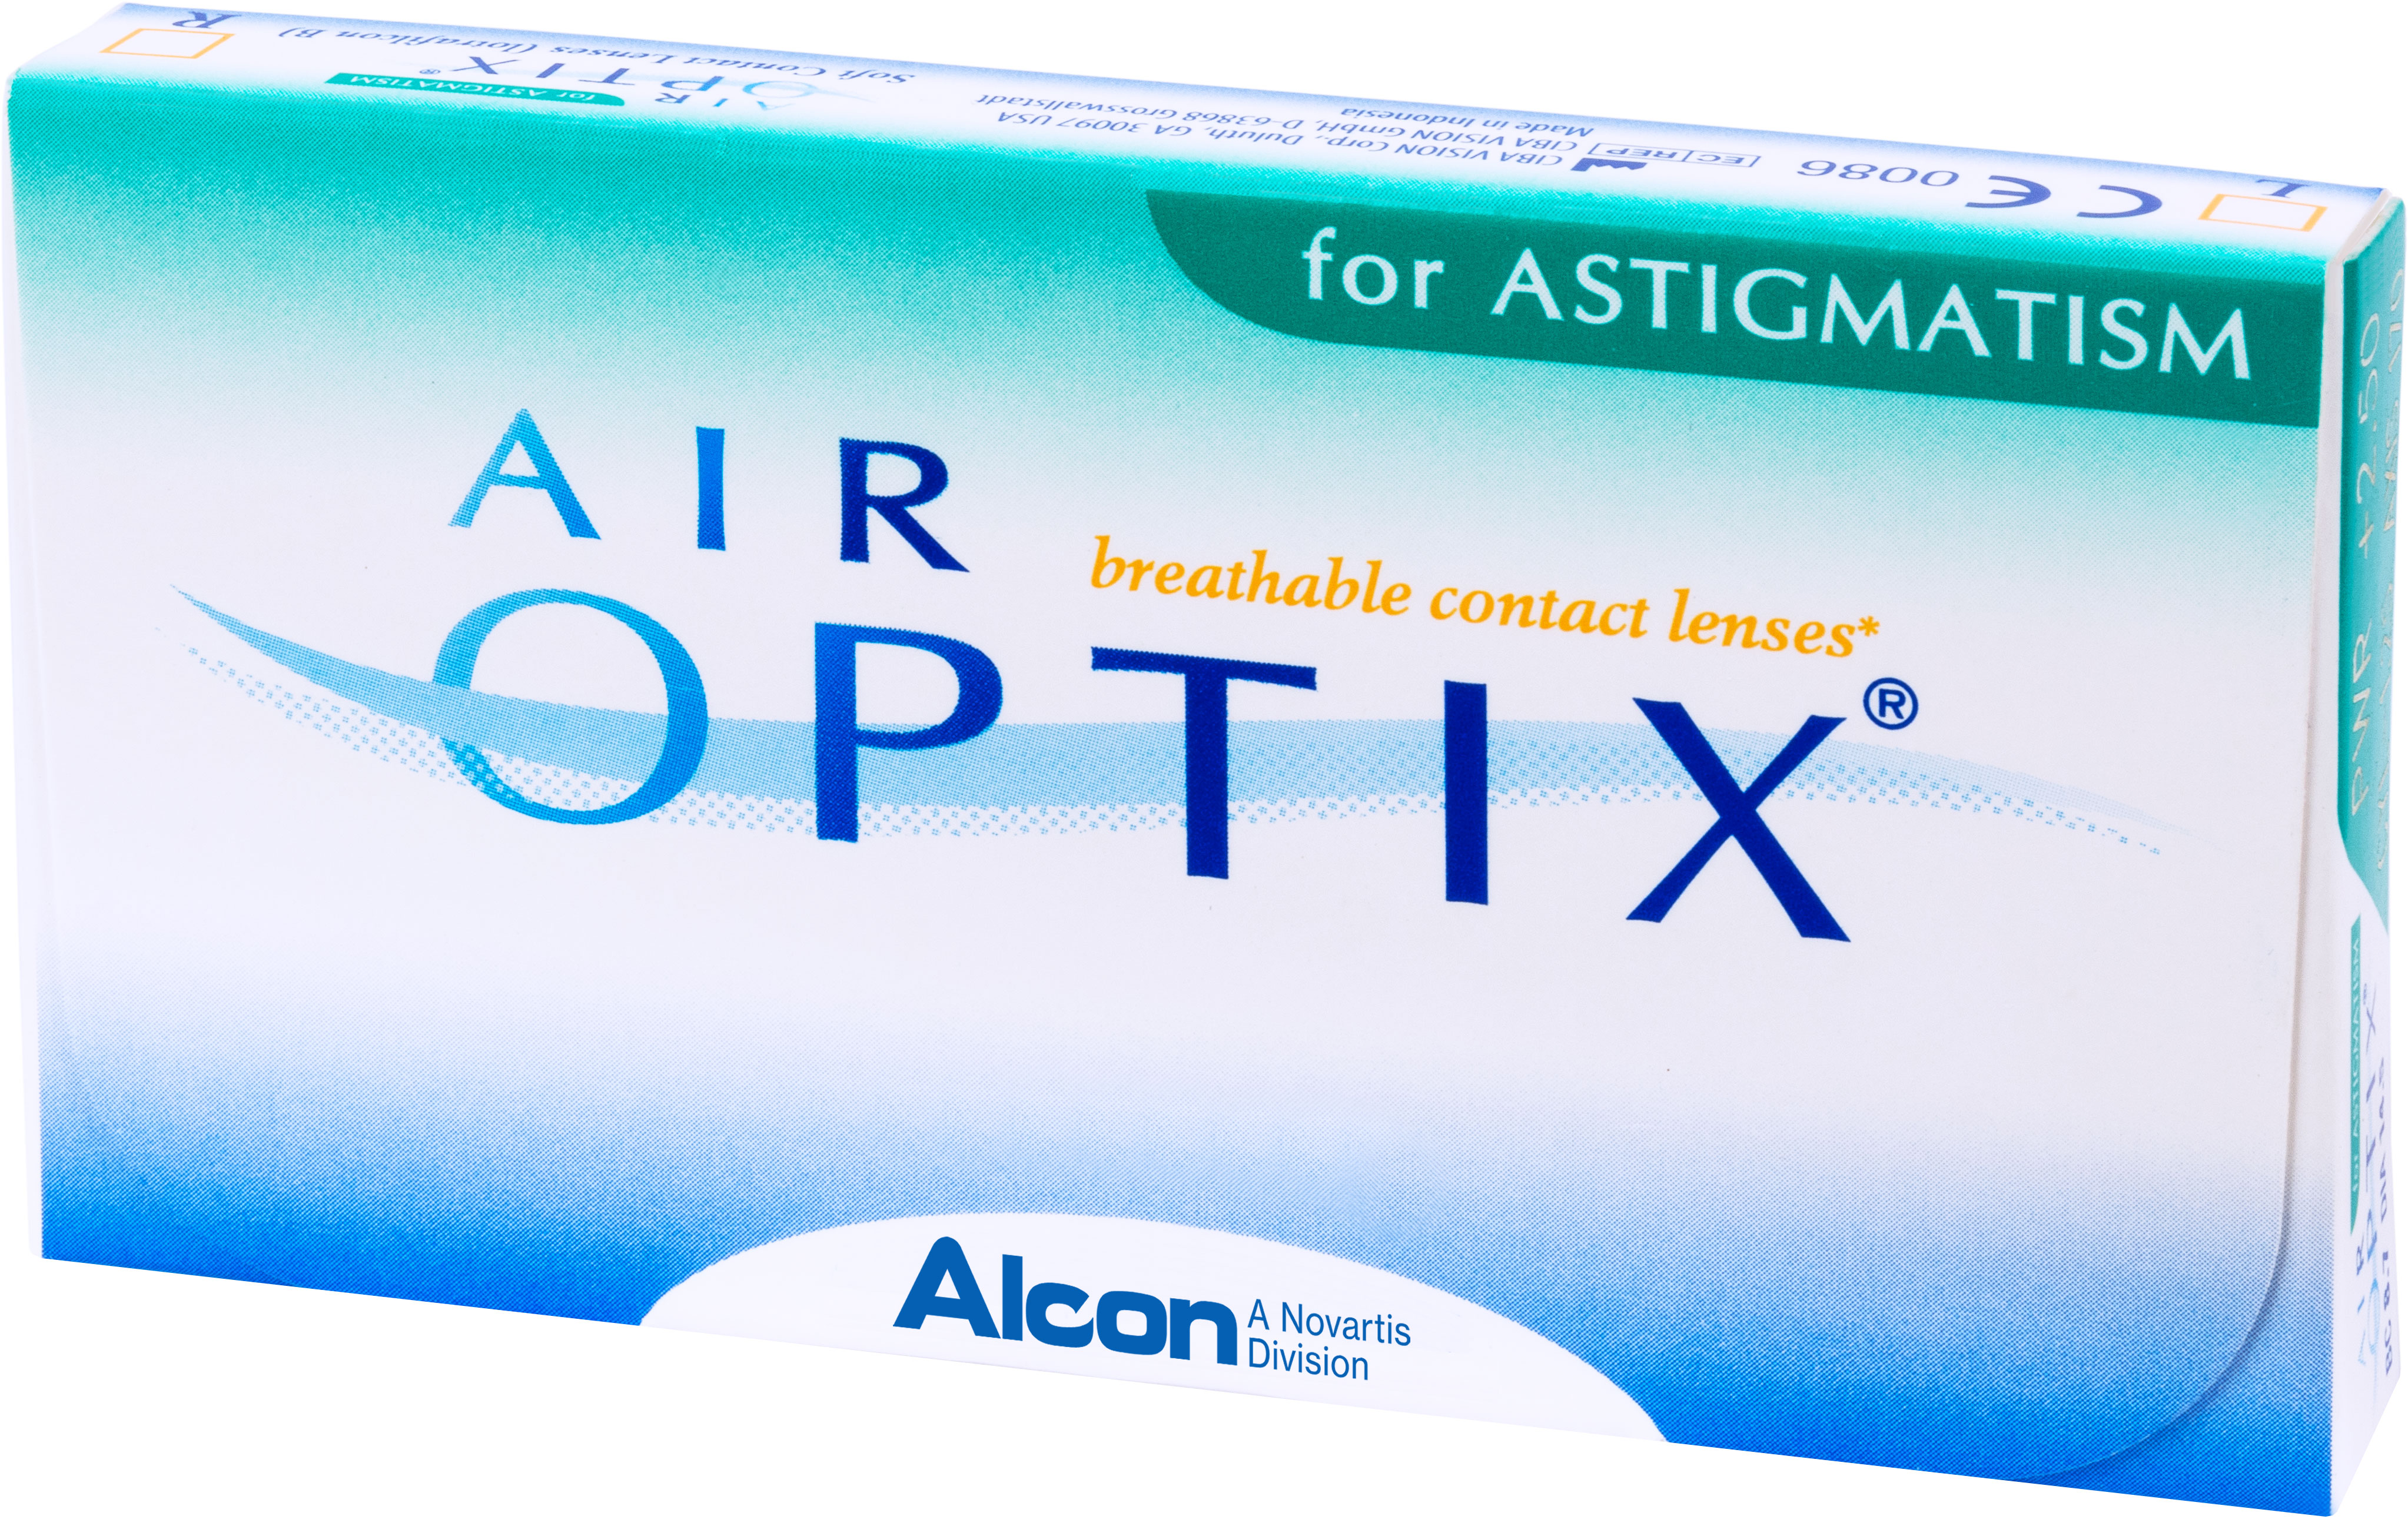 Аlcon контактные линзы Air Optix for Astigmatism 3pk /BC 8.7/DIA14.5/PWR +3.25/CYL -0.75/AXIS 130184with Hydraclear